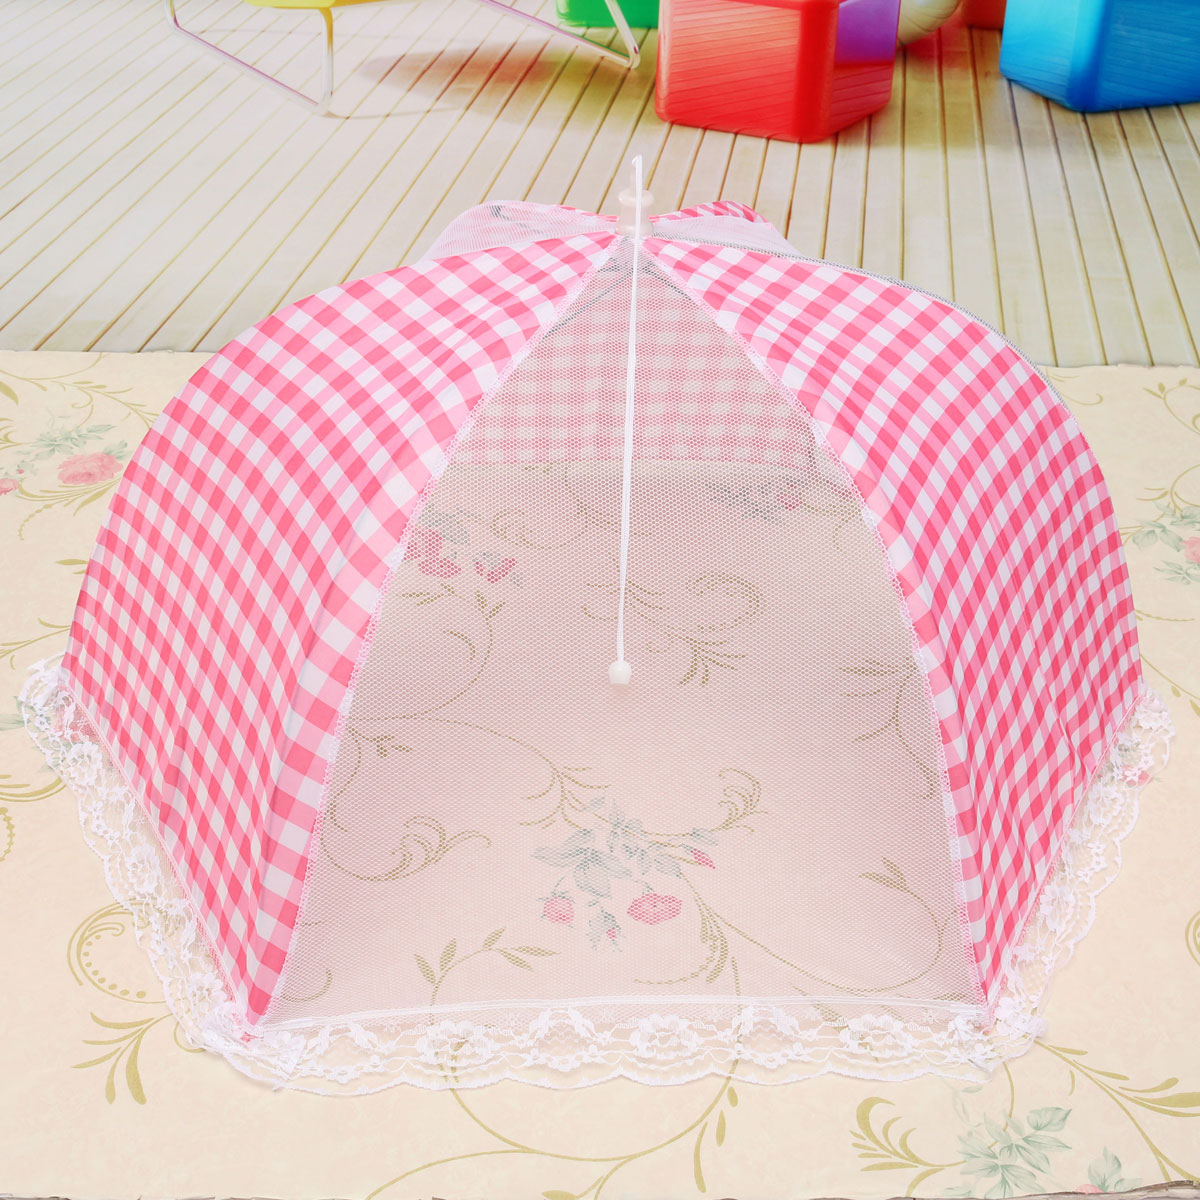 Collapsible Food Umbrella Cover Pop Up Dome Mesh Round (Pink)   Lazada ...